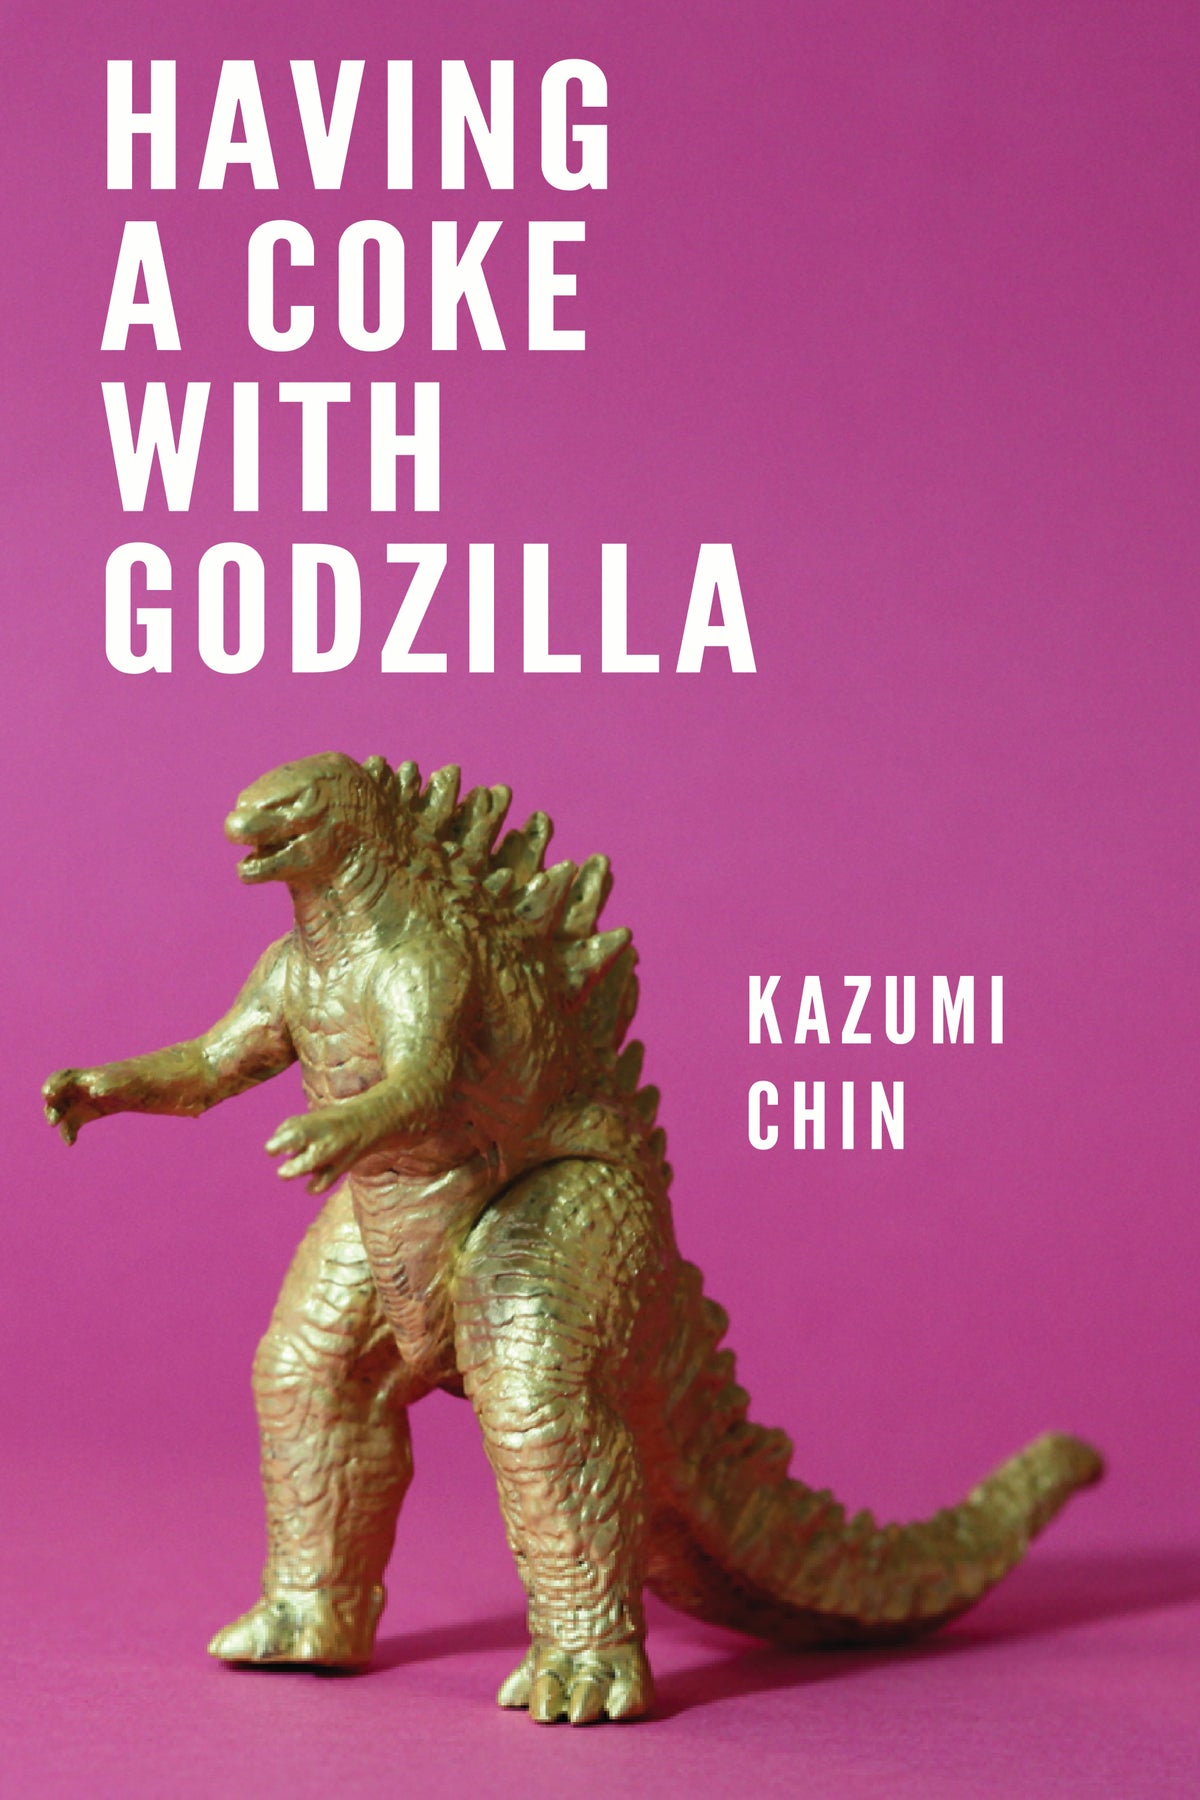 Image of Having a Coke with Godzilla by Kazumi Chin